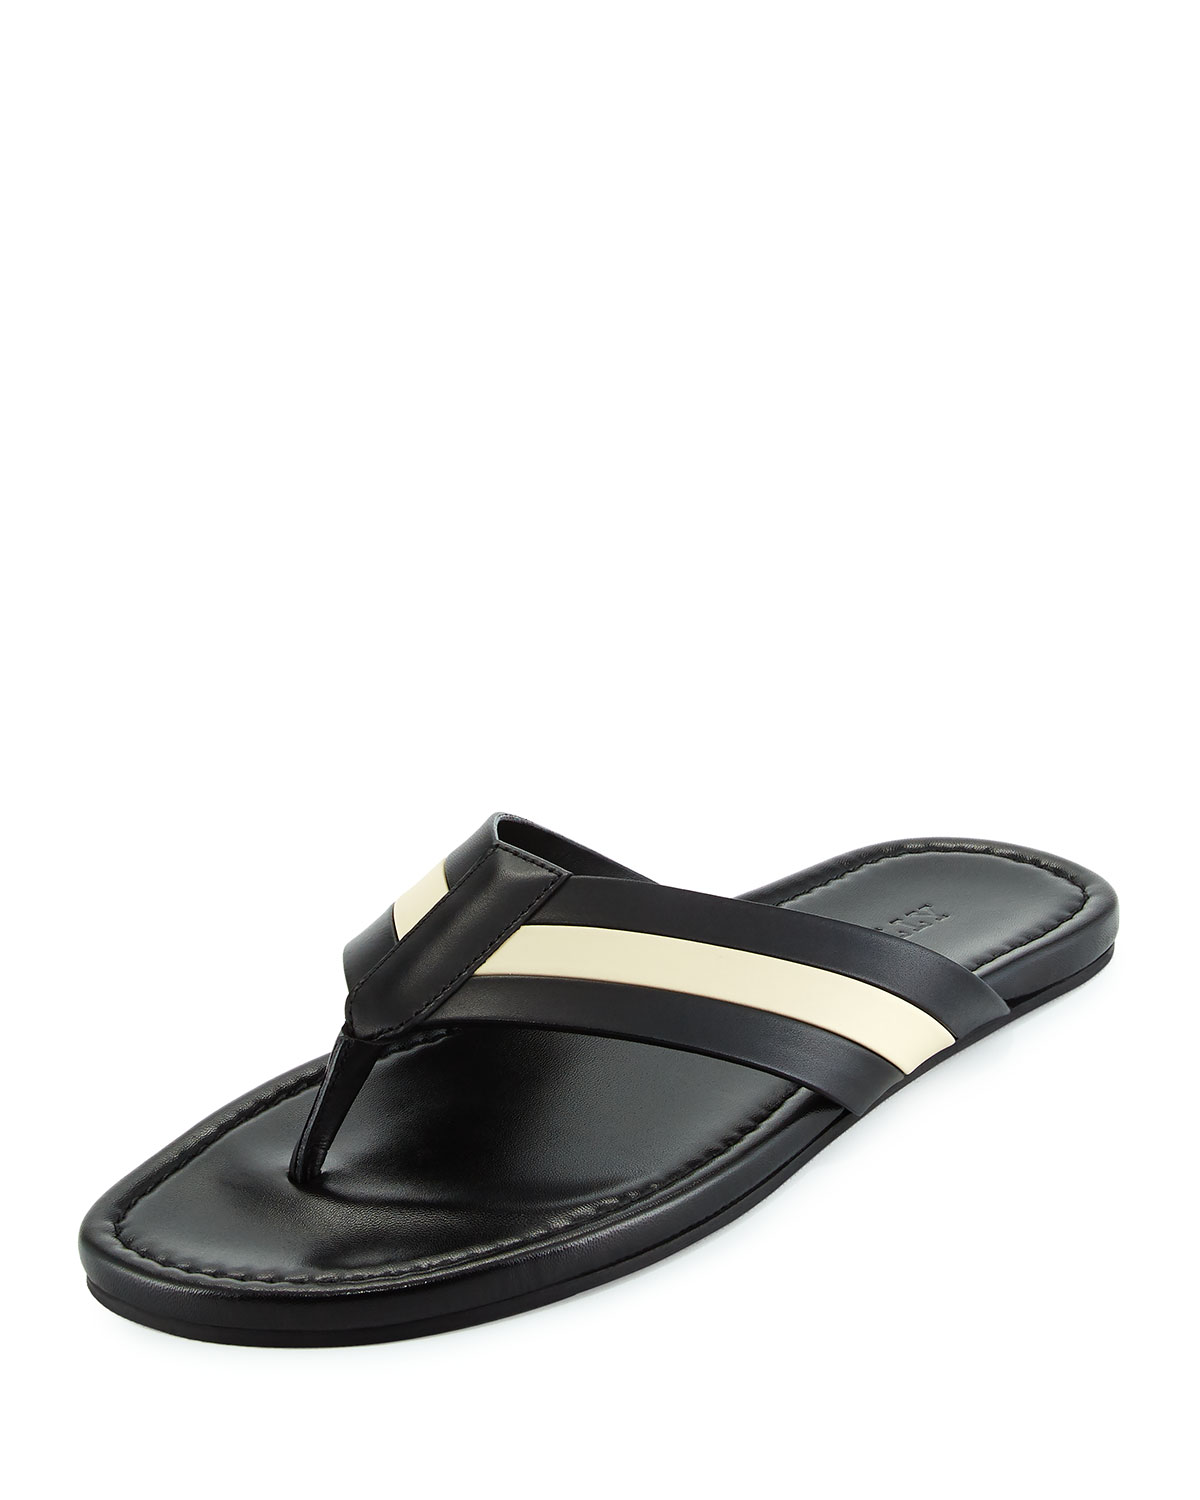 discount countdown package Bally Leather Thong Sandals outlet exclusive LVCRGq